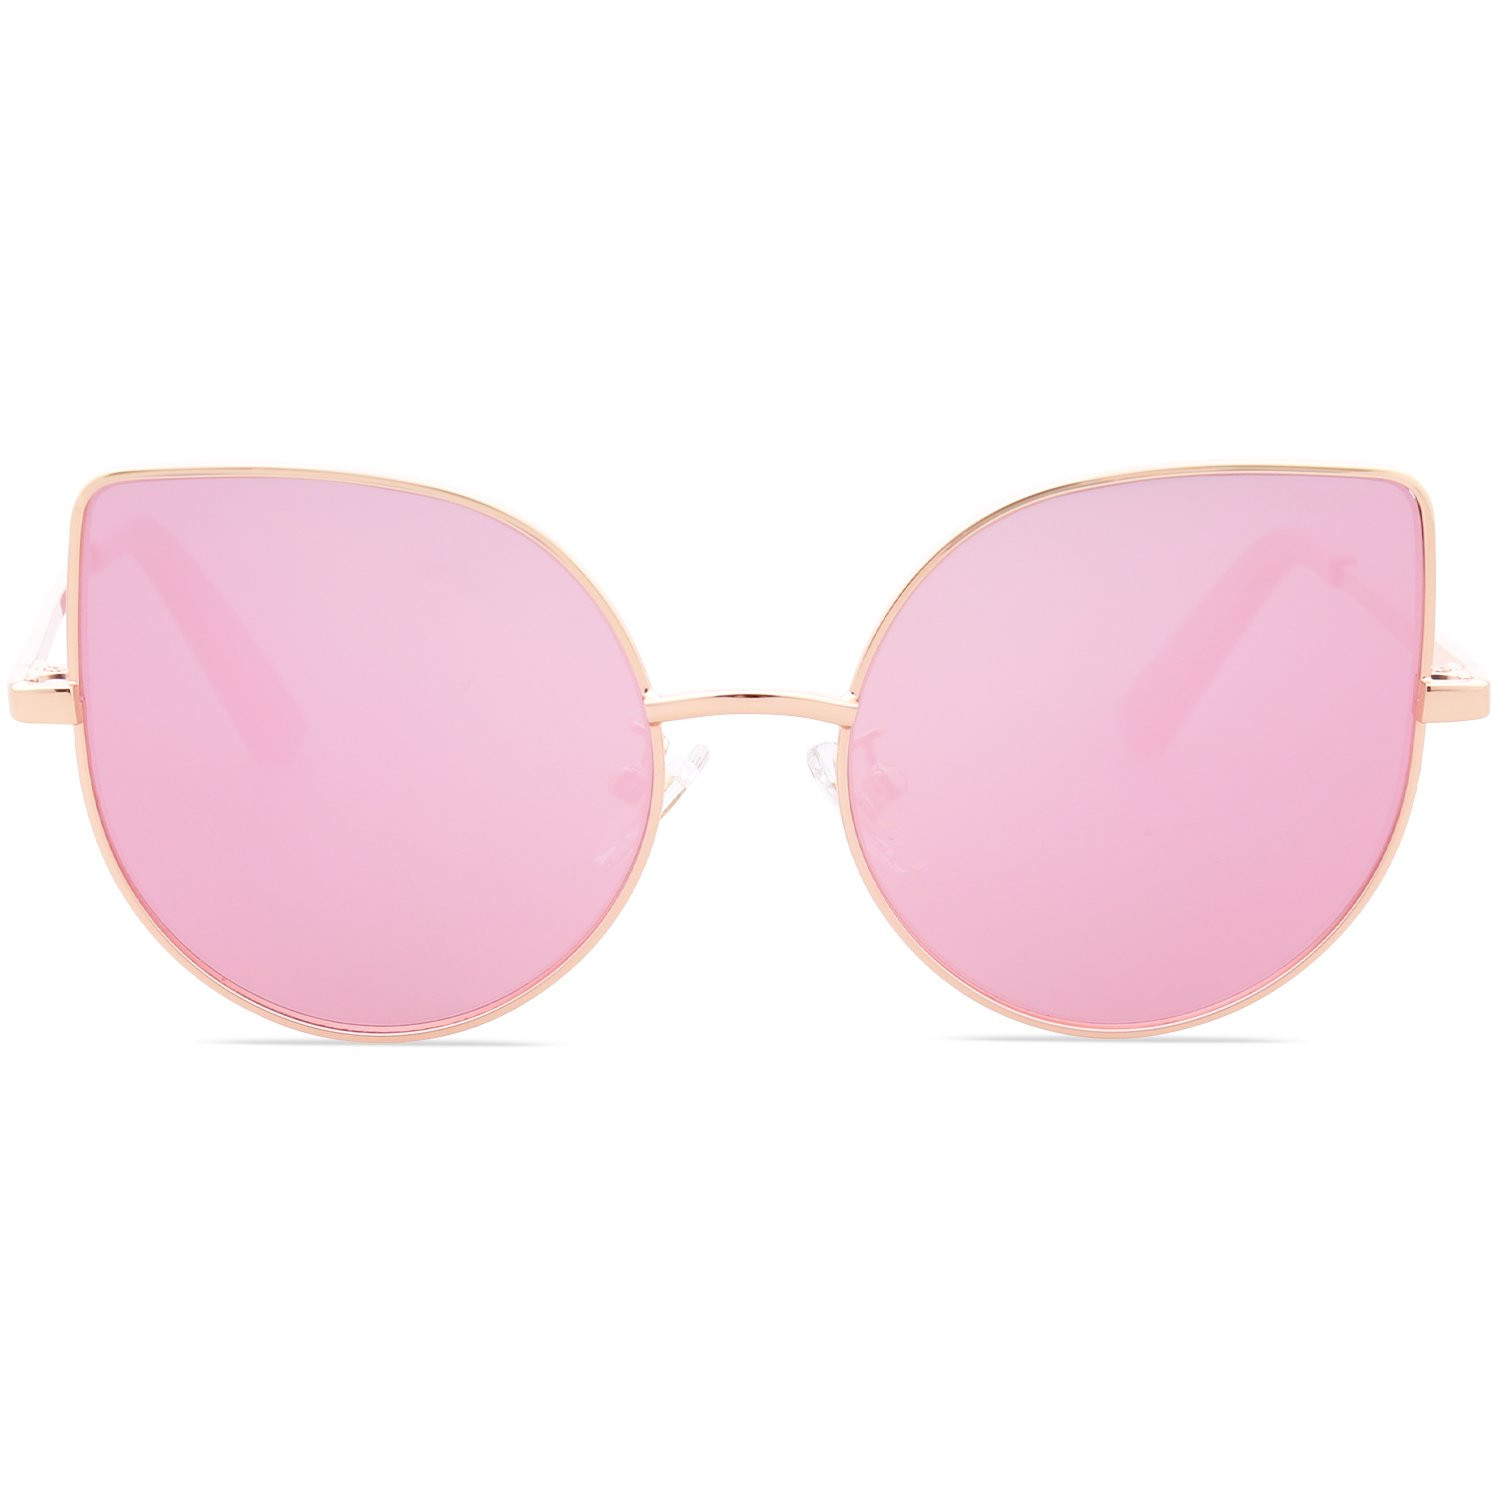 SojoS Kids Fashion Cat Eye Round Sunglasses For Girls UV Protection Mirror Lens SK101 SK301 SK302 SK303 with Gold Frame/Full Pink Mirrored Lens